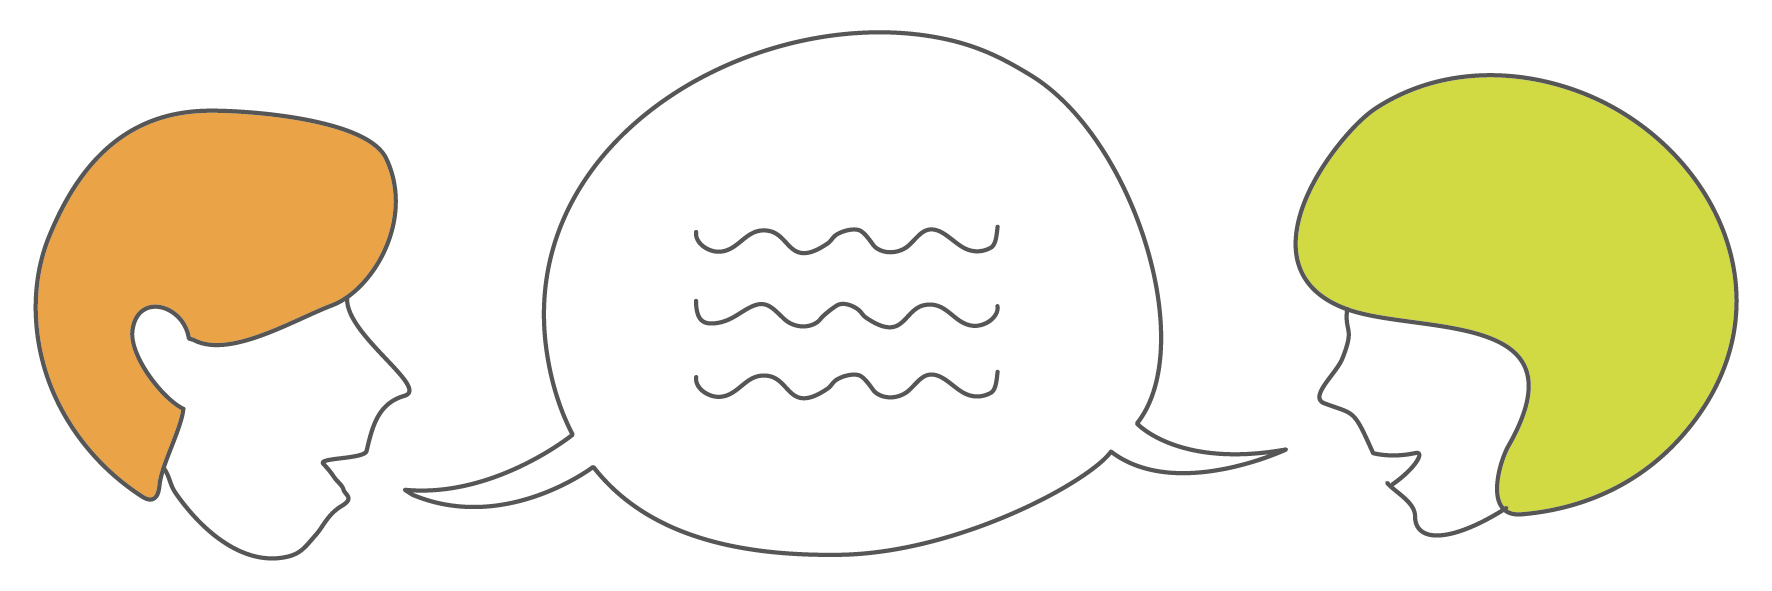 ILL_043_Conversation heads only (Insights brand colours)-01.png